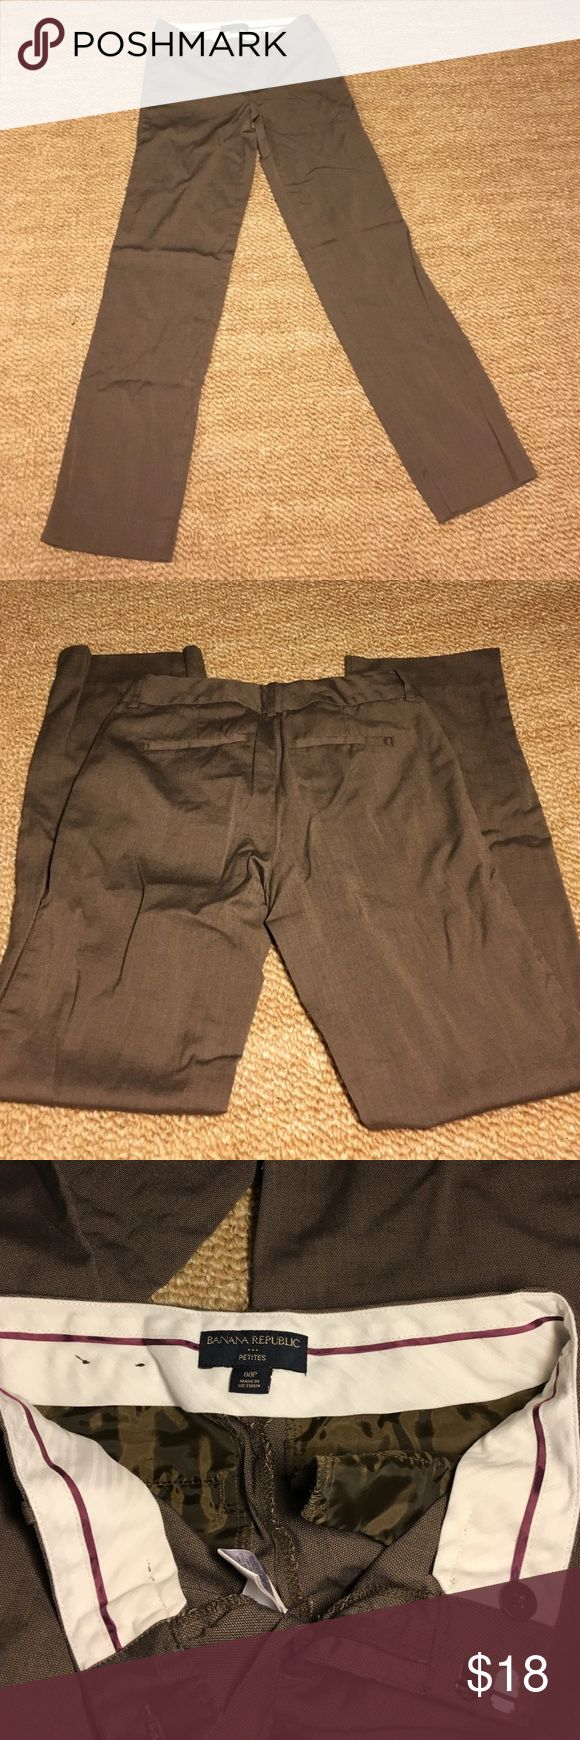 Banana Republic Trousers Rarely worn petite trousers straight leg Banana Republic Pants Trousers